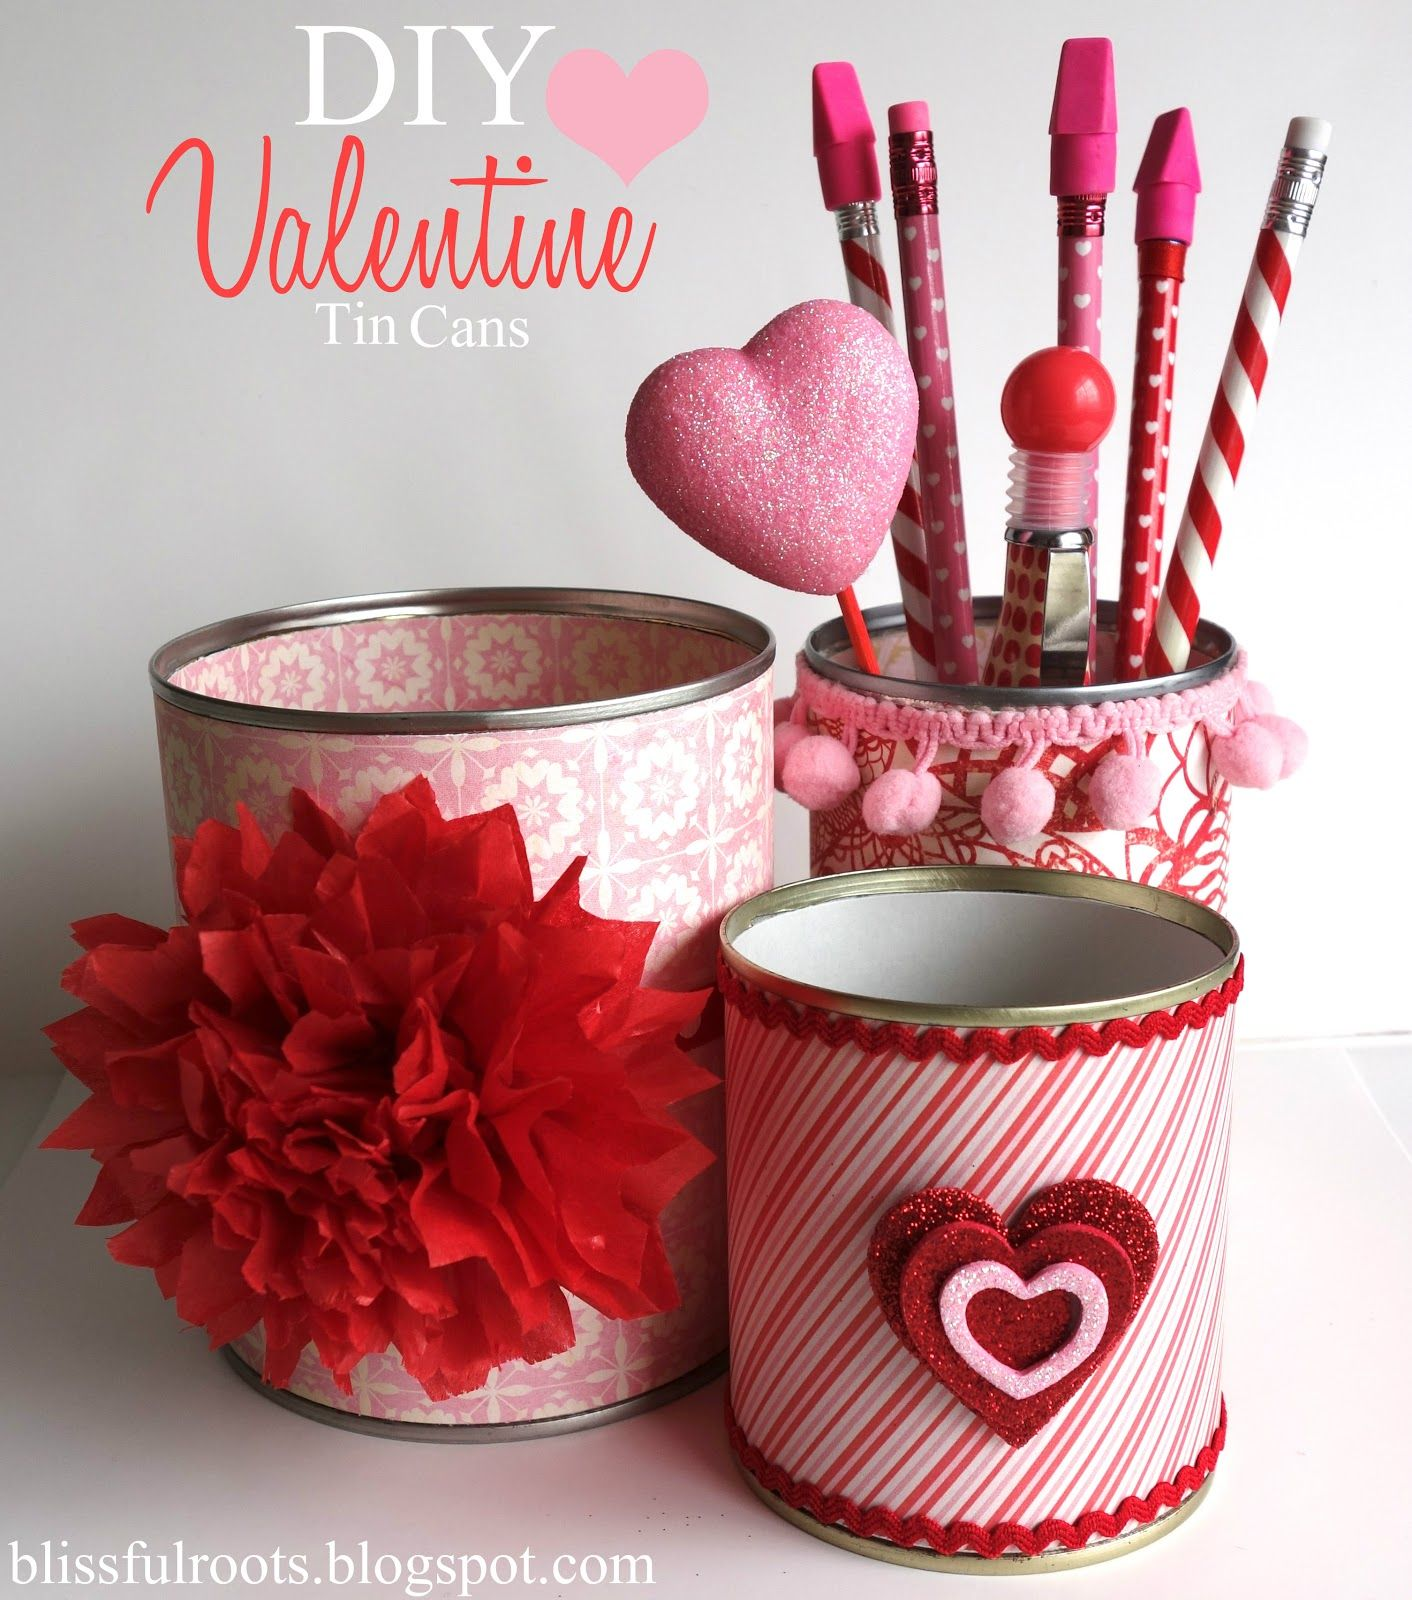 Blissful roots diy valentine tin cans cans jars and bottles blissful roots diy valentine tin cans solutioingenieria Images